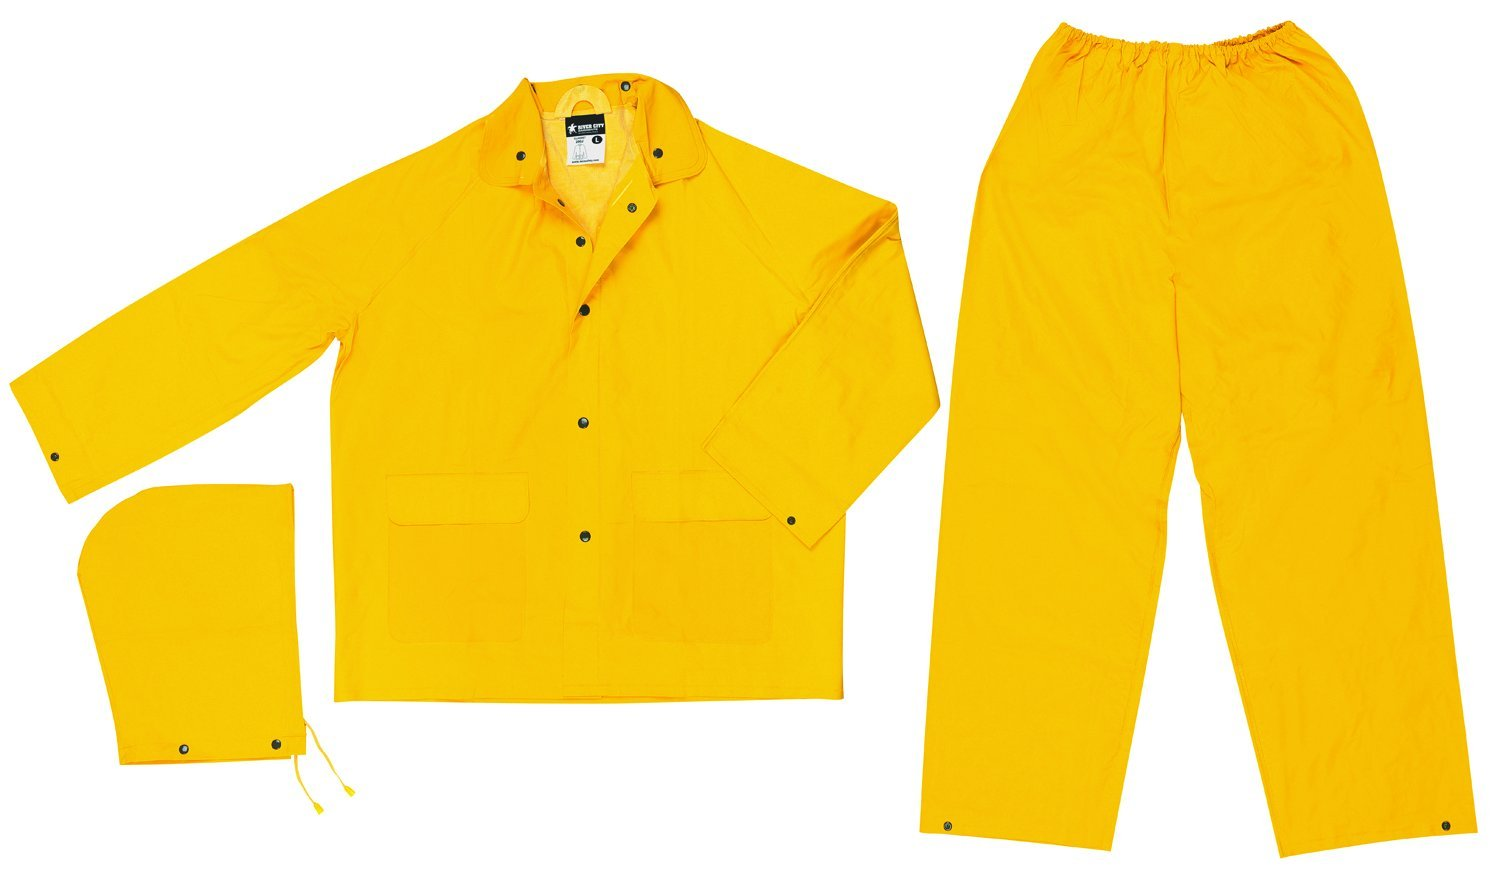 MCR Safety 2903L Classic PVC/Polyester 3-Piece Rainsuit with Elastic Waist Pants, Yellow, Large